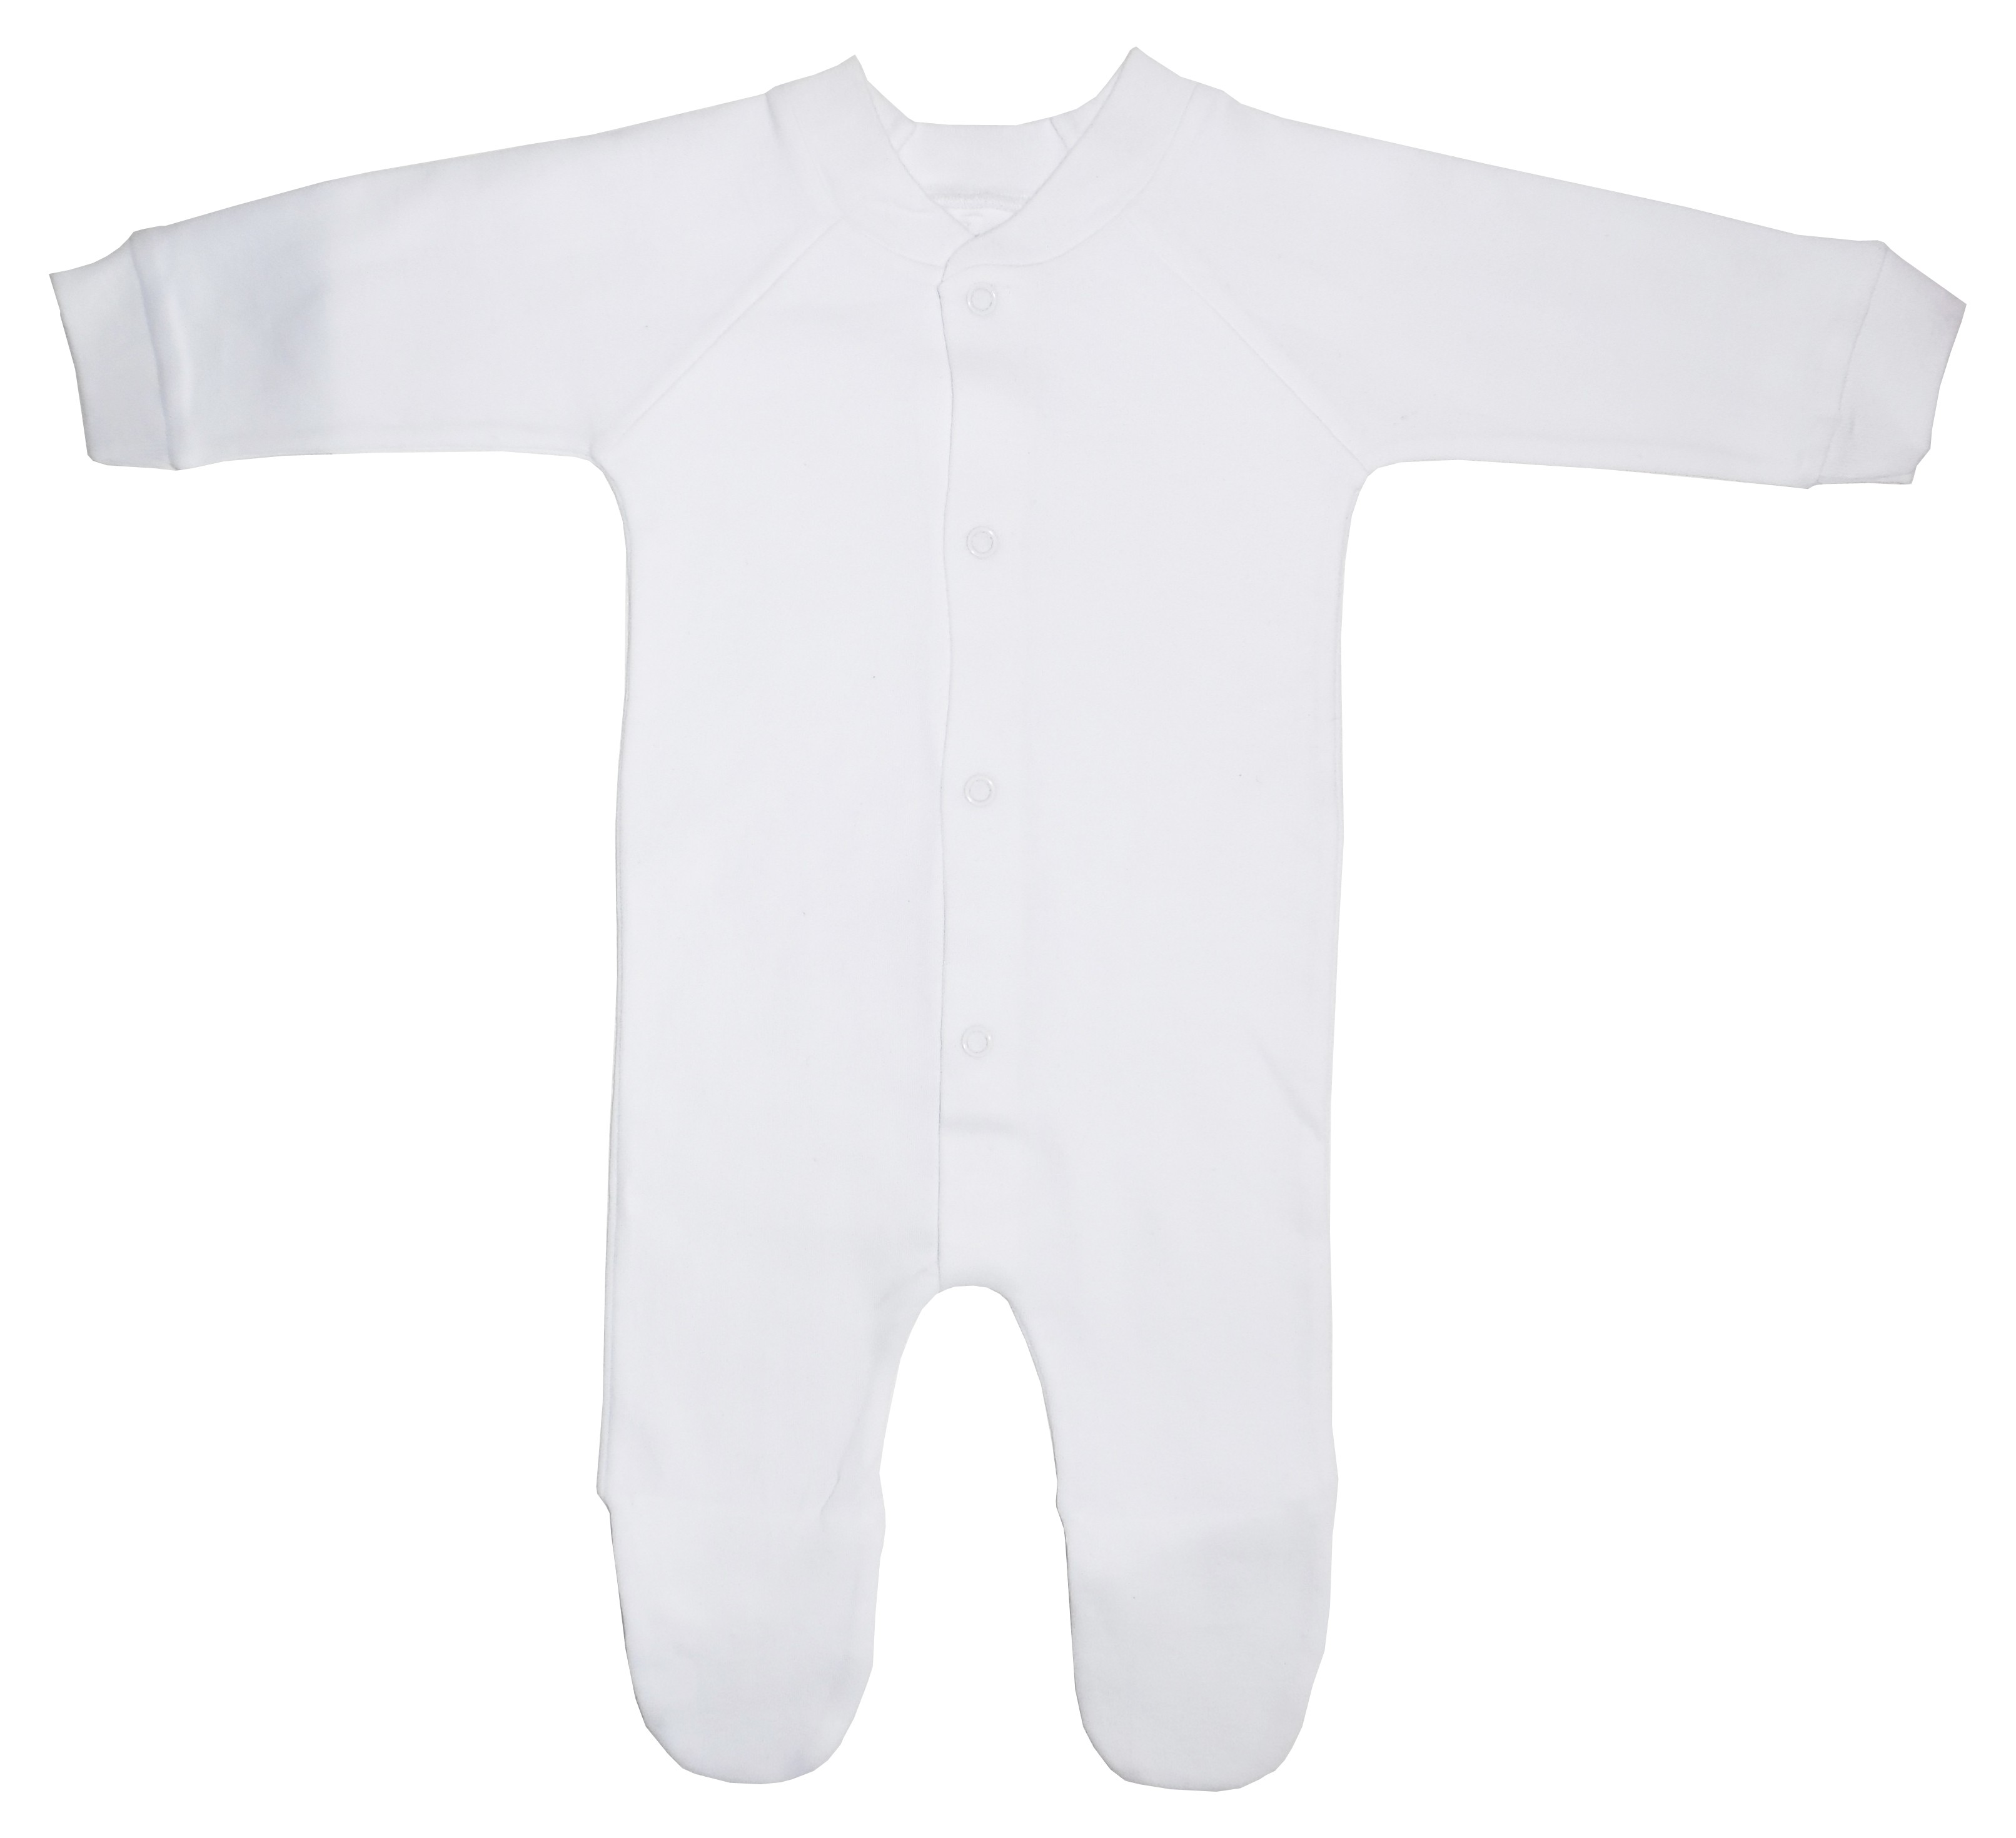 Supplier of Wholesale Baby Clothes. Blank baby clothes sold in bulk ...